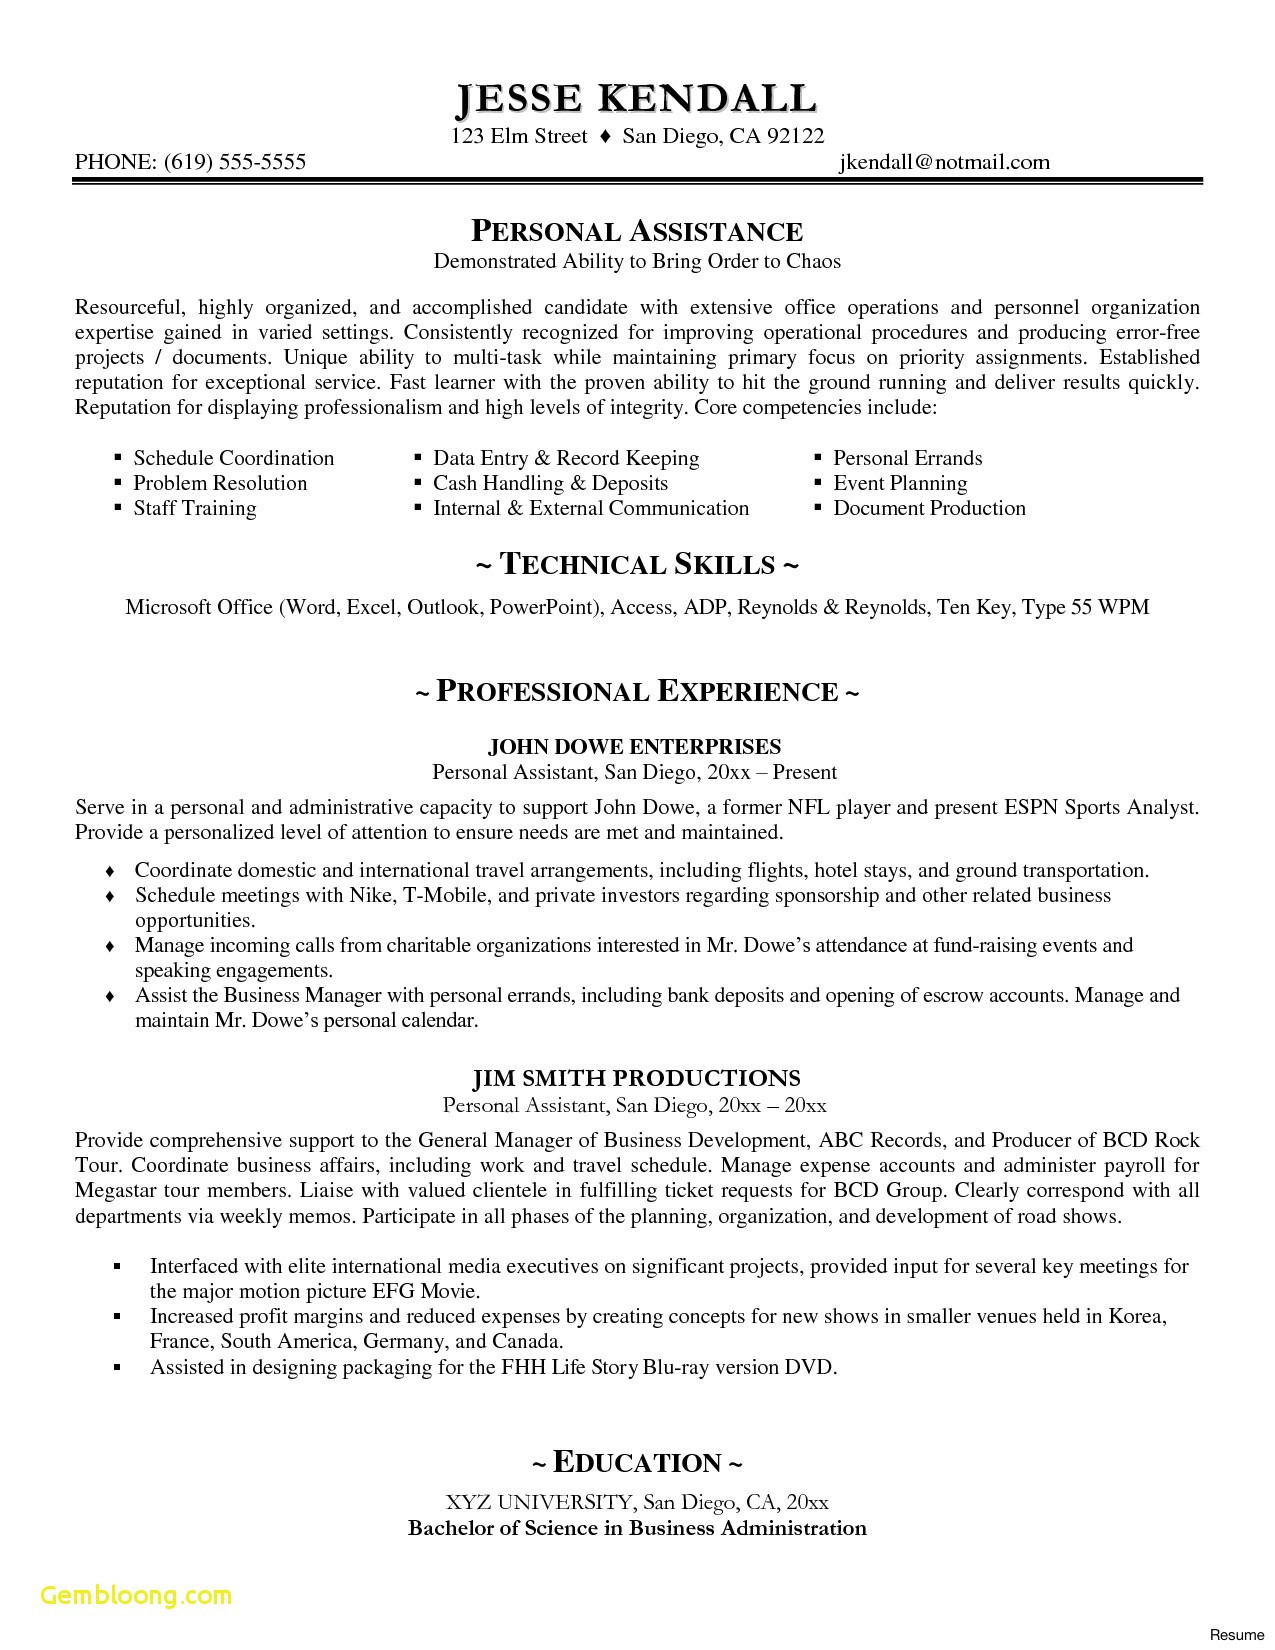 sponsorship letter template doc Collection-Sponsorship Letter Template Word Top Rated Resume Cover Letter Sample Word Format Fresh Resume Samples Doc New 6-k